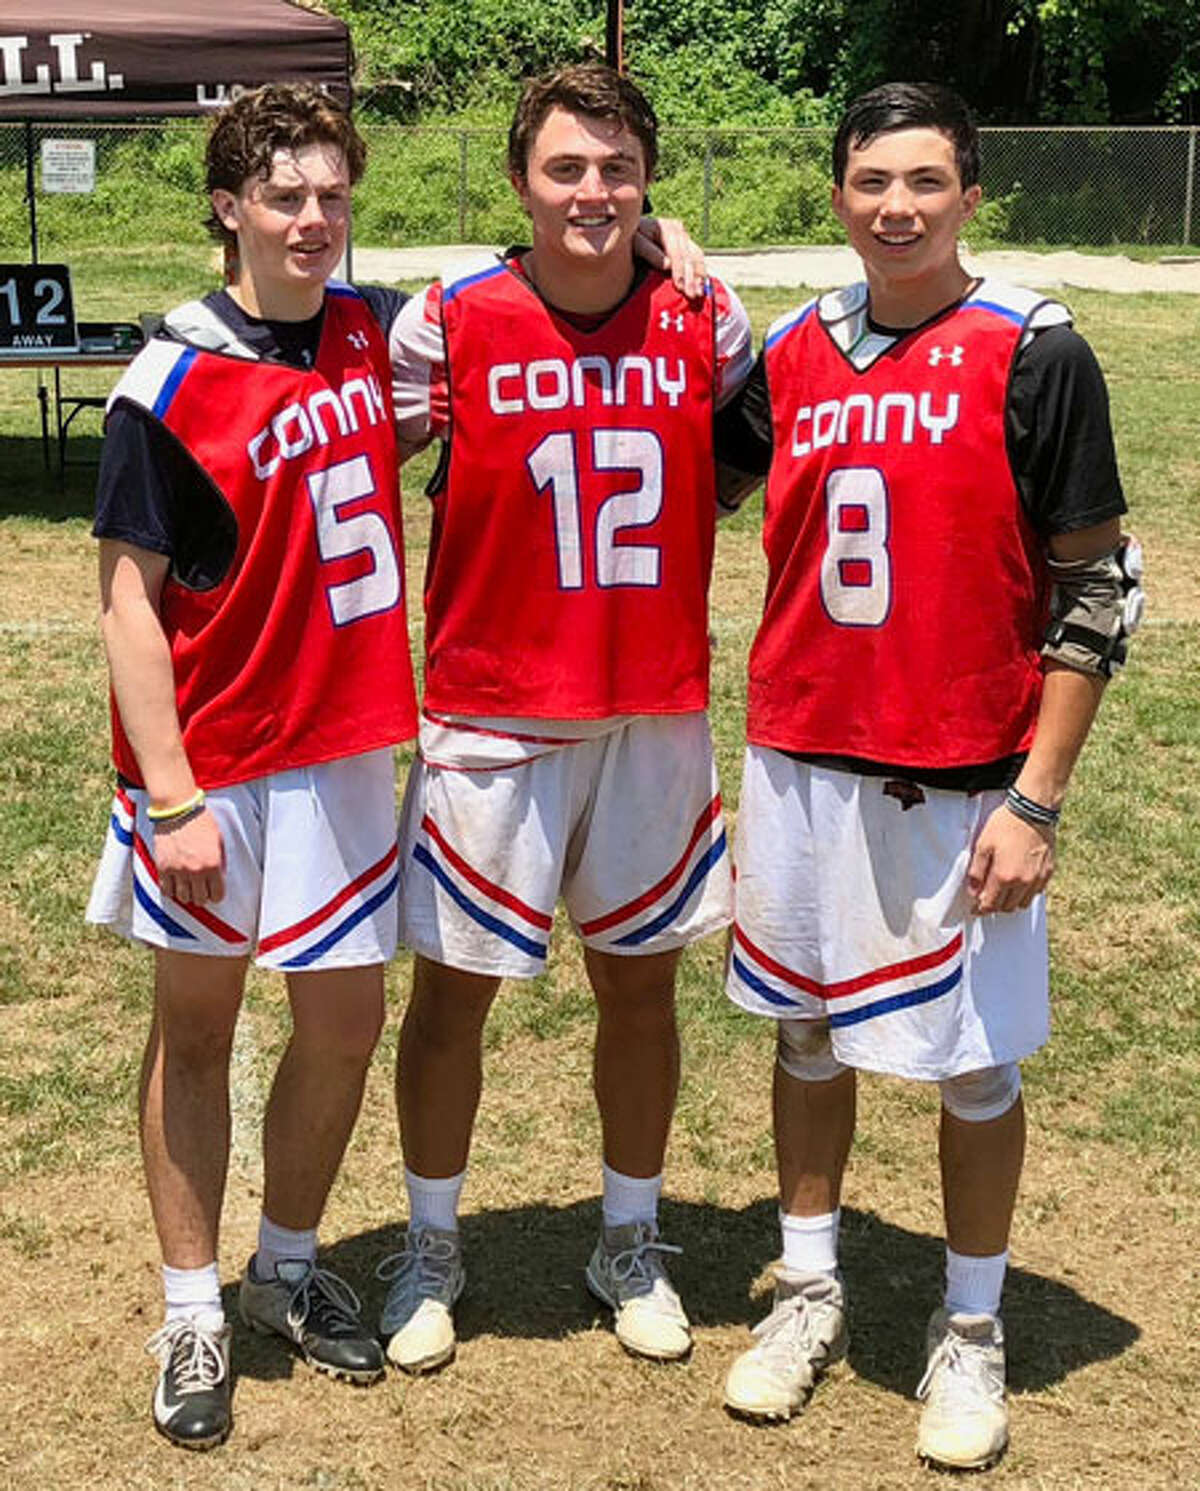 From left, New Canaan's Liam Griffiths, Quintin O'Connell, and Justin Wietfeldt played in the Under Armour Underclass national tournament in Baltimore.